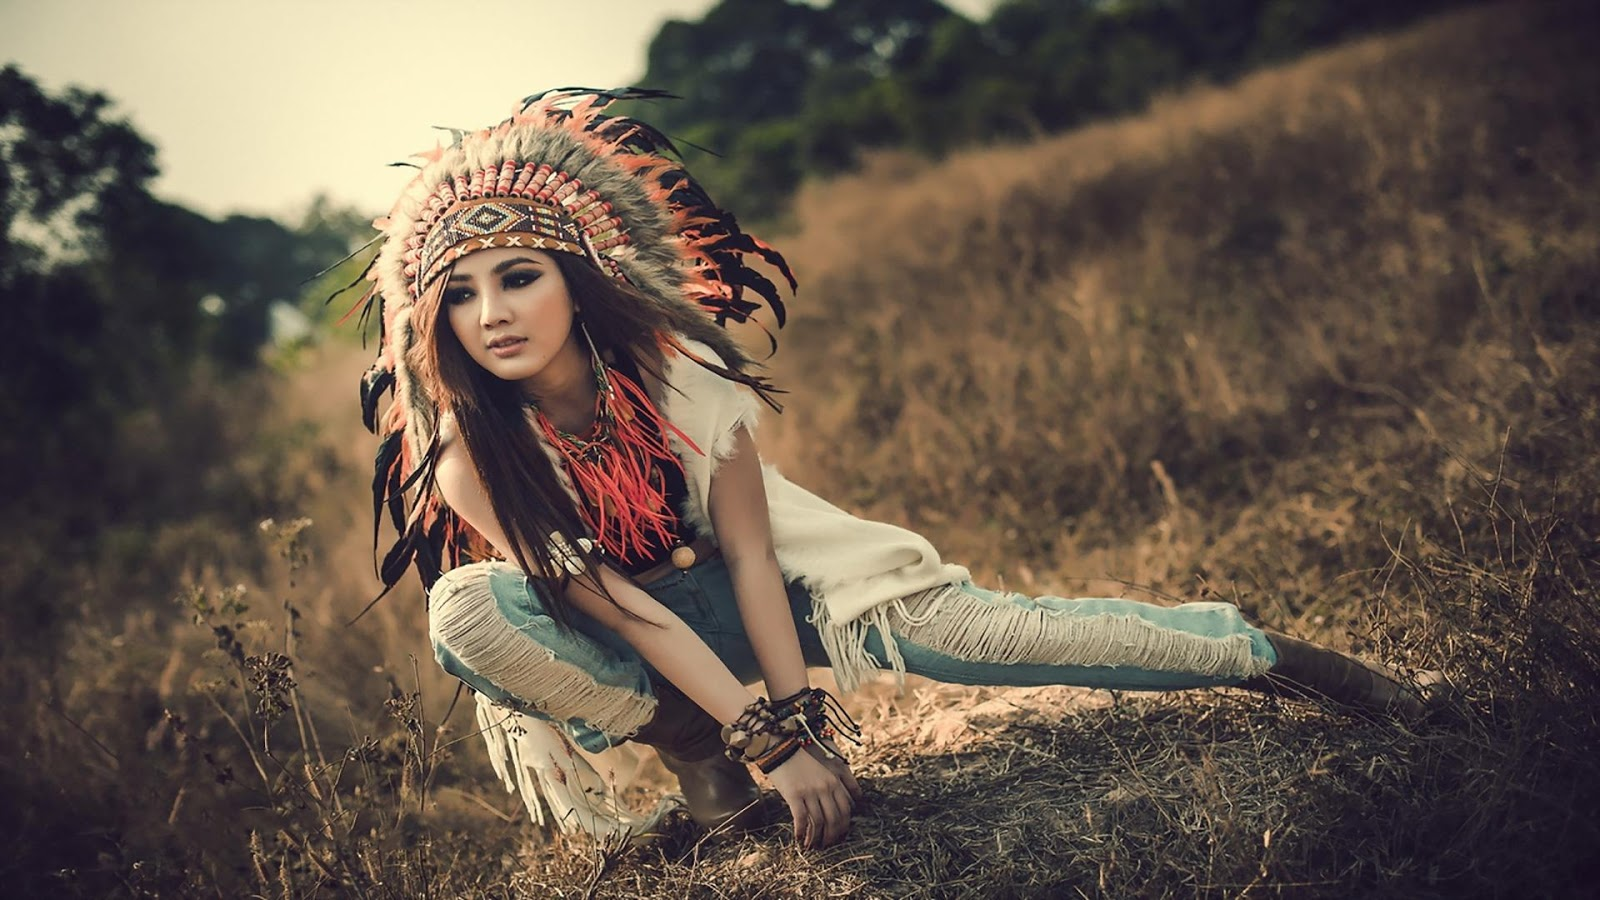 Full Hd Native American Wallpaper Full Hd Pictures